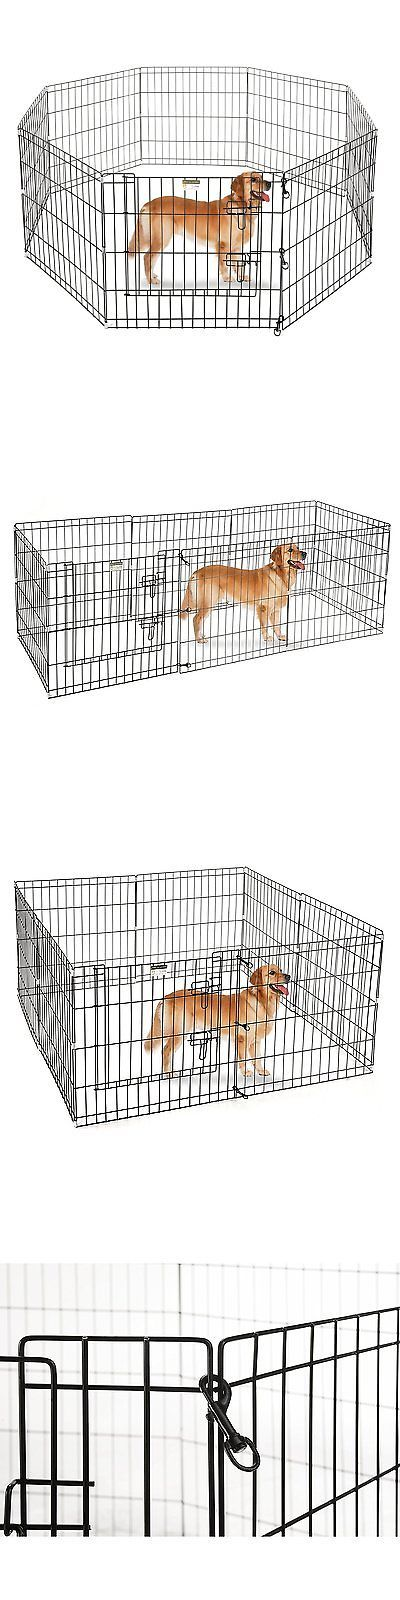 Fences and Exercise Pens 20748: Portable Folding Exercise Pet Playpen Dog Puppy Fences Gate Home Indoor Outdoor -> BUY IT NOW ONLY: $45.8 on eBay!